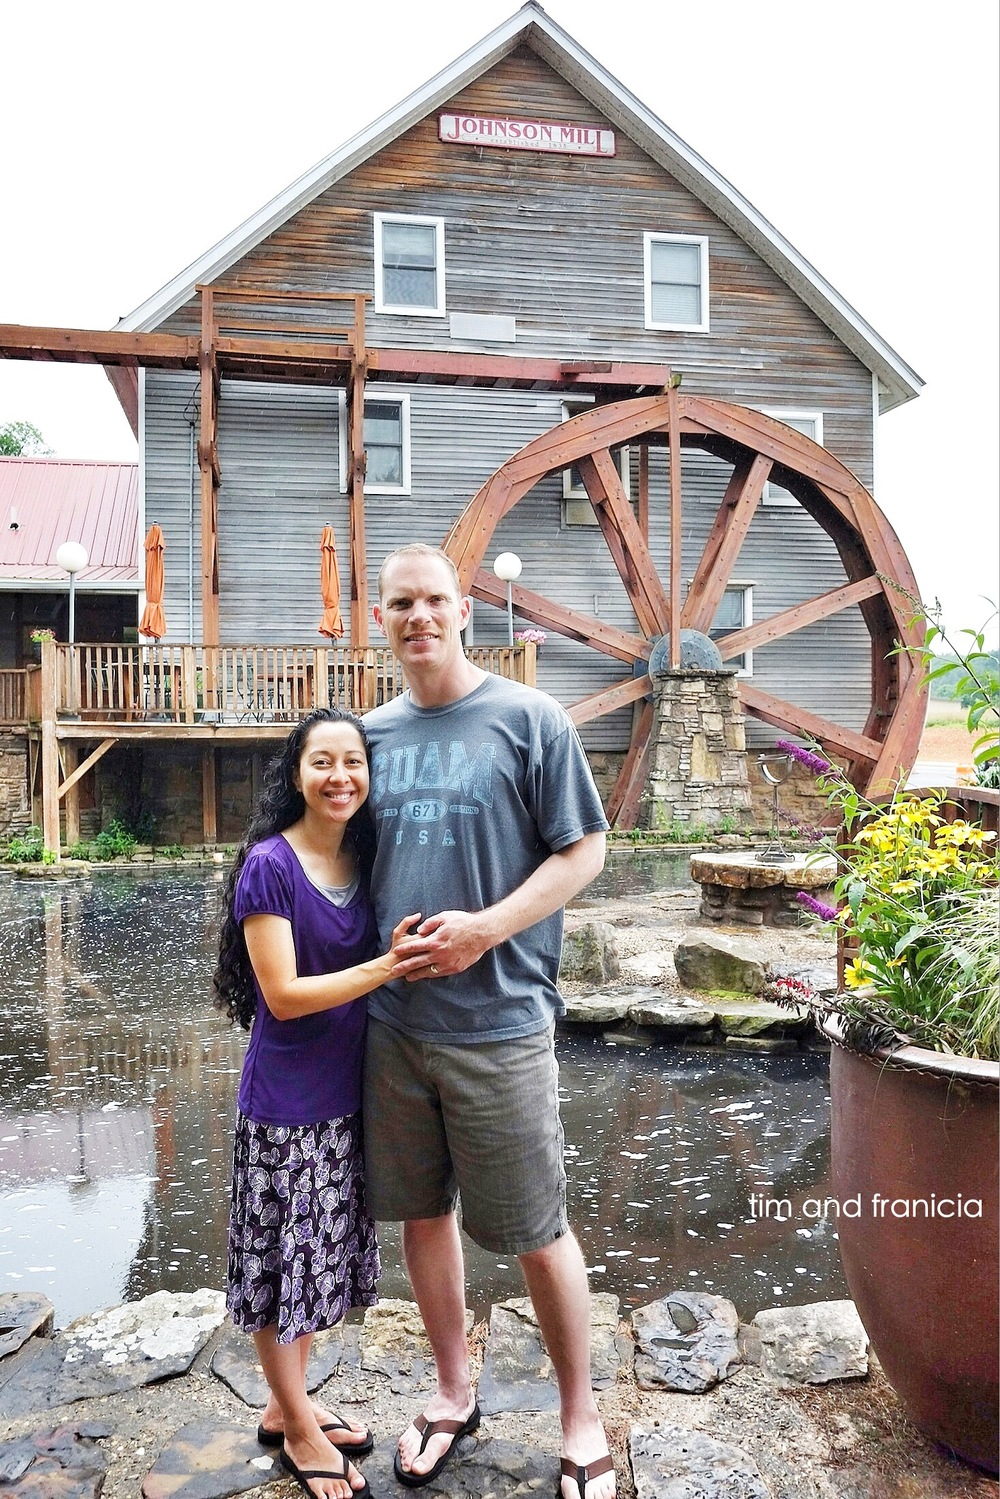 Tim & Franicia at the Inn at the Mill during our June 2014 Arkansas stay